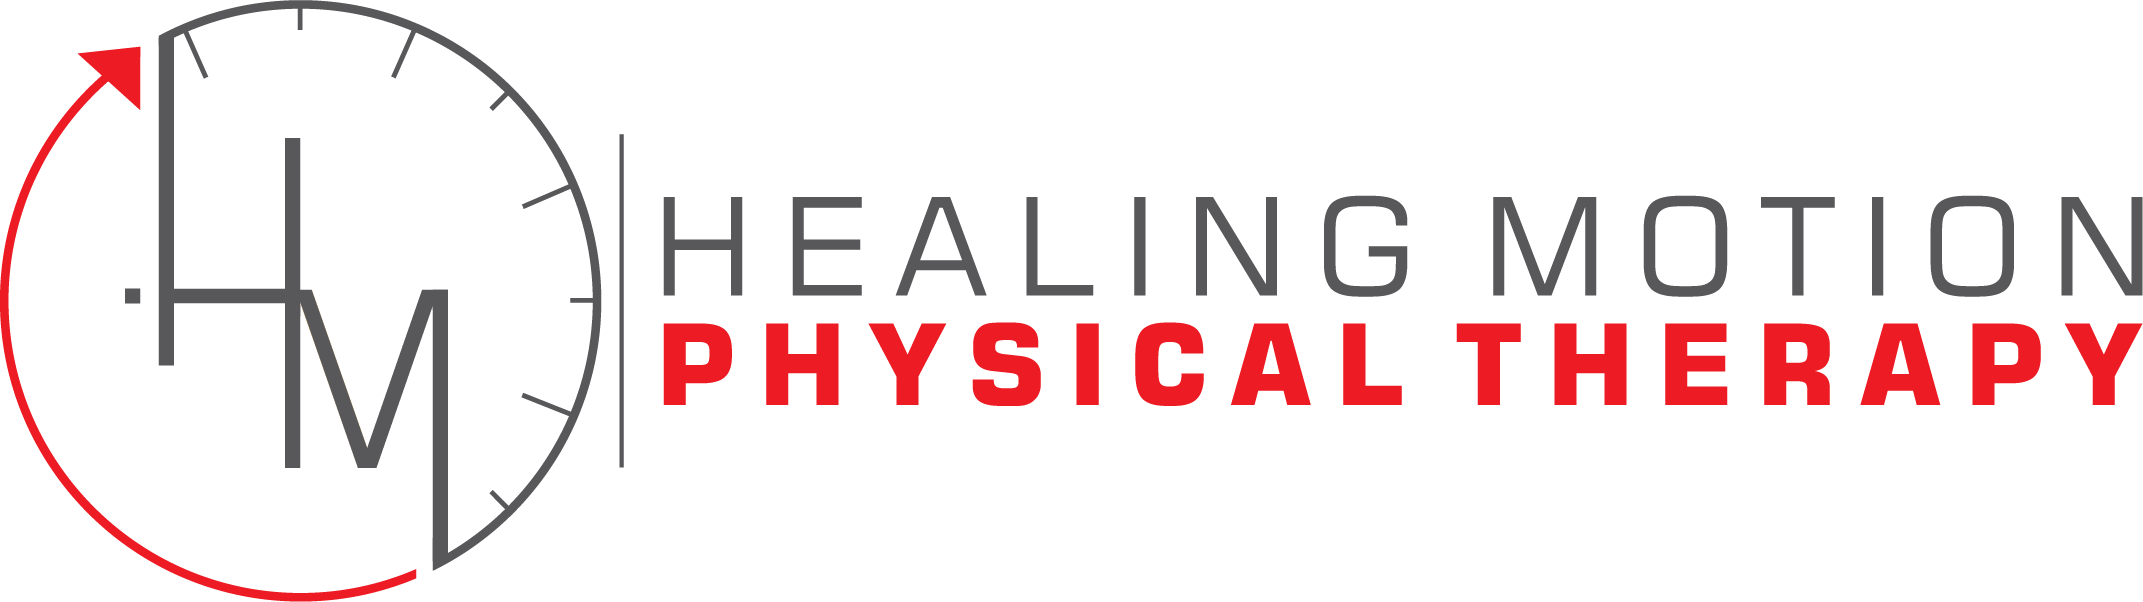 Healing Motion Physical Therapy